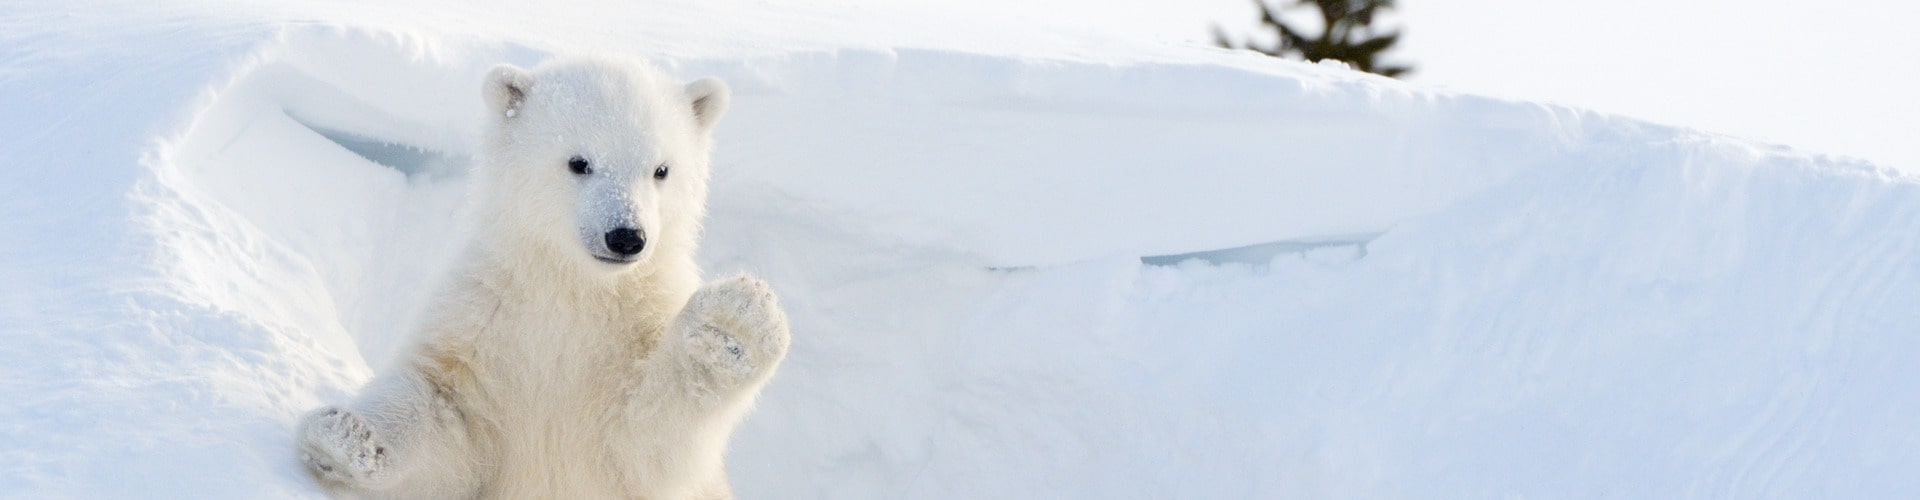 Arctic drilling is endangering the polar bears